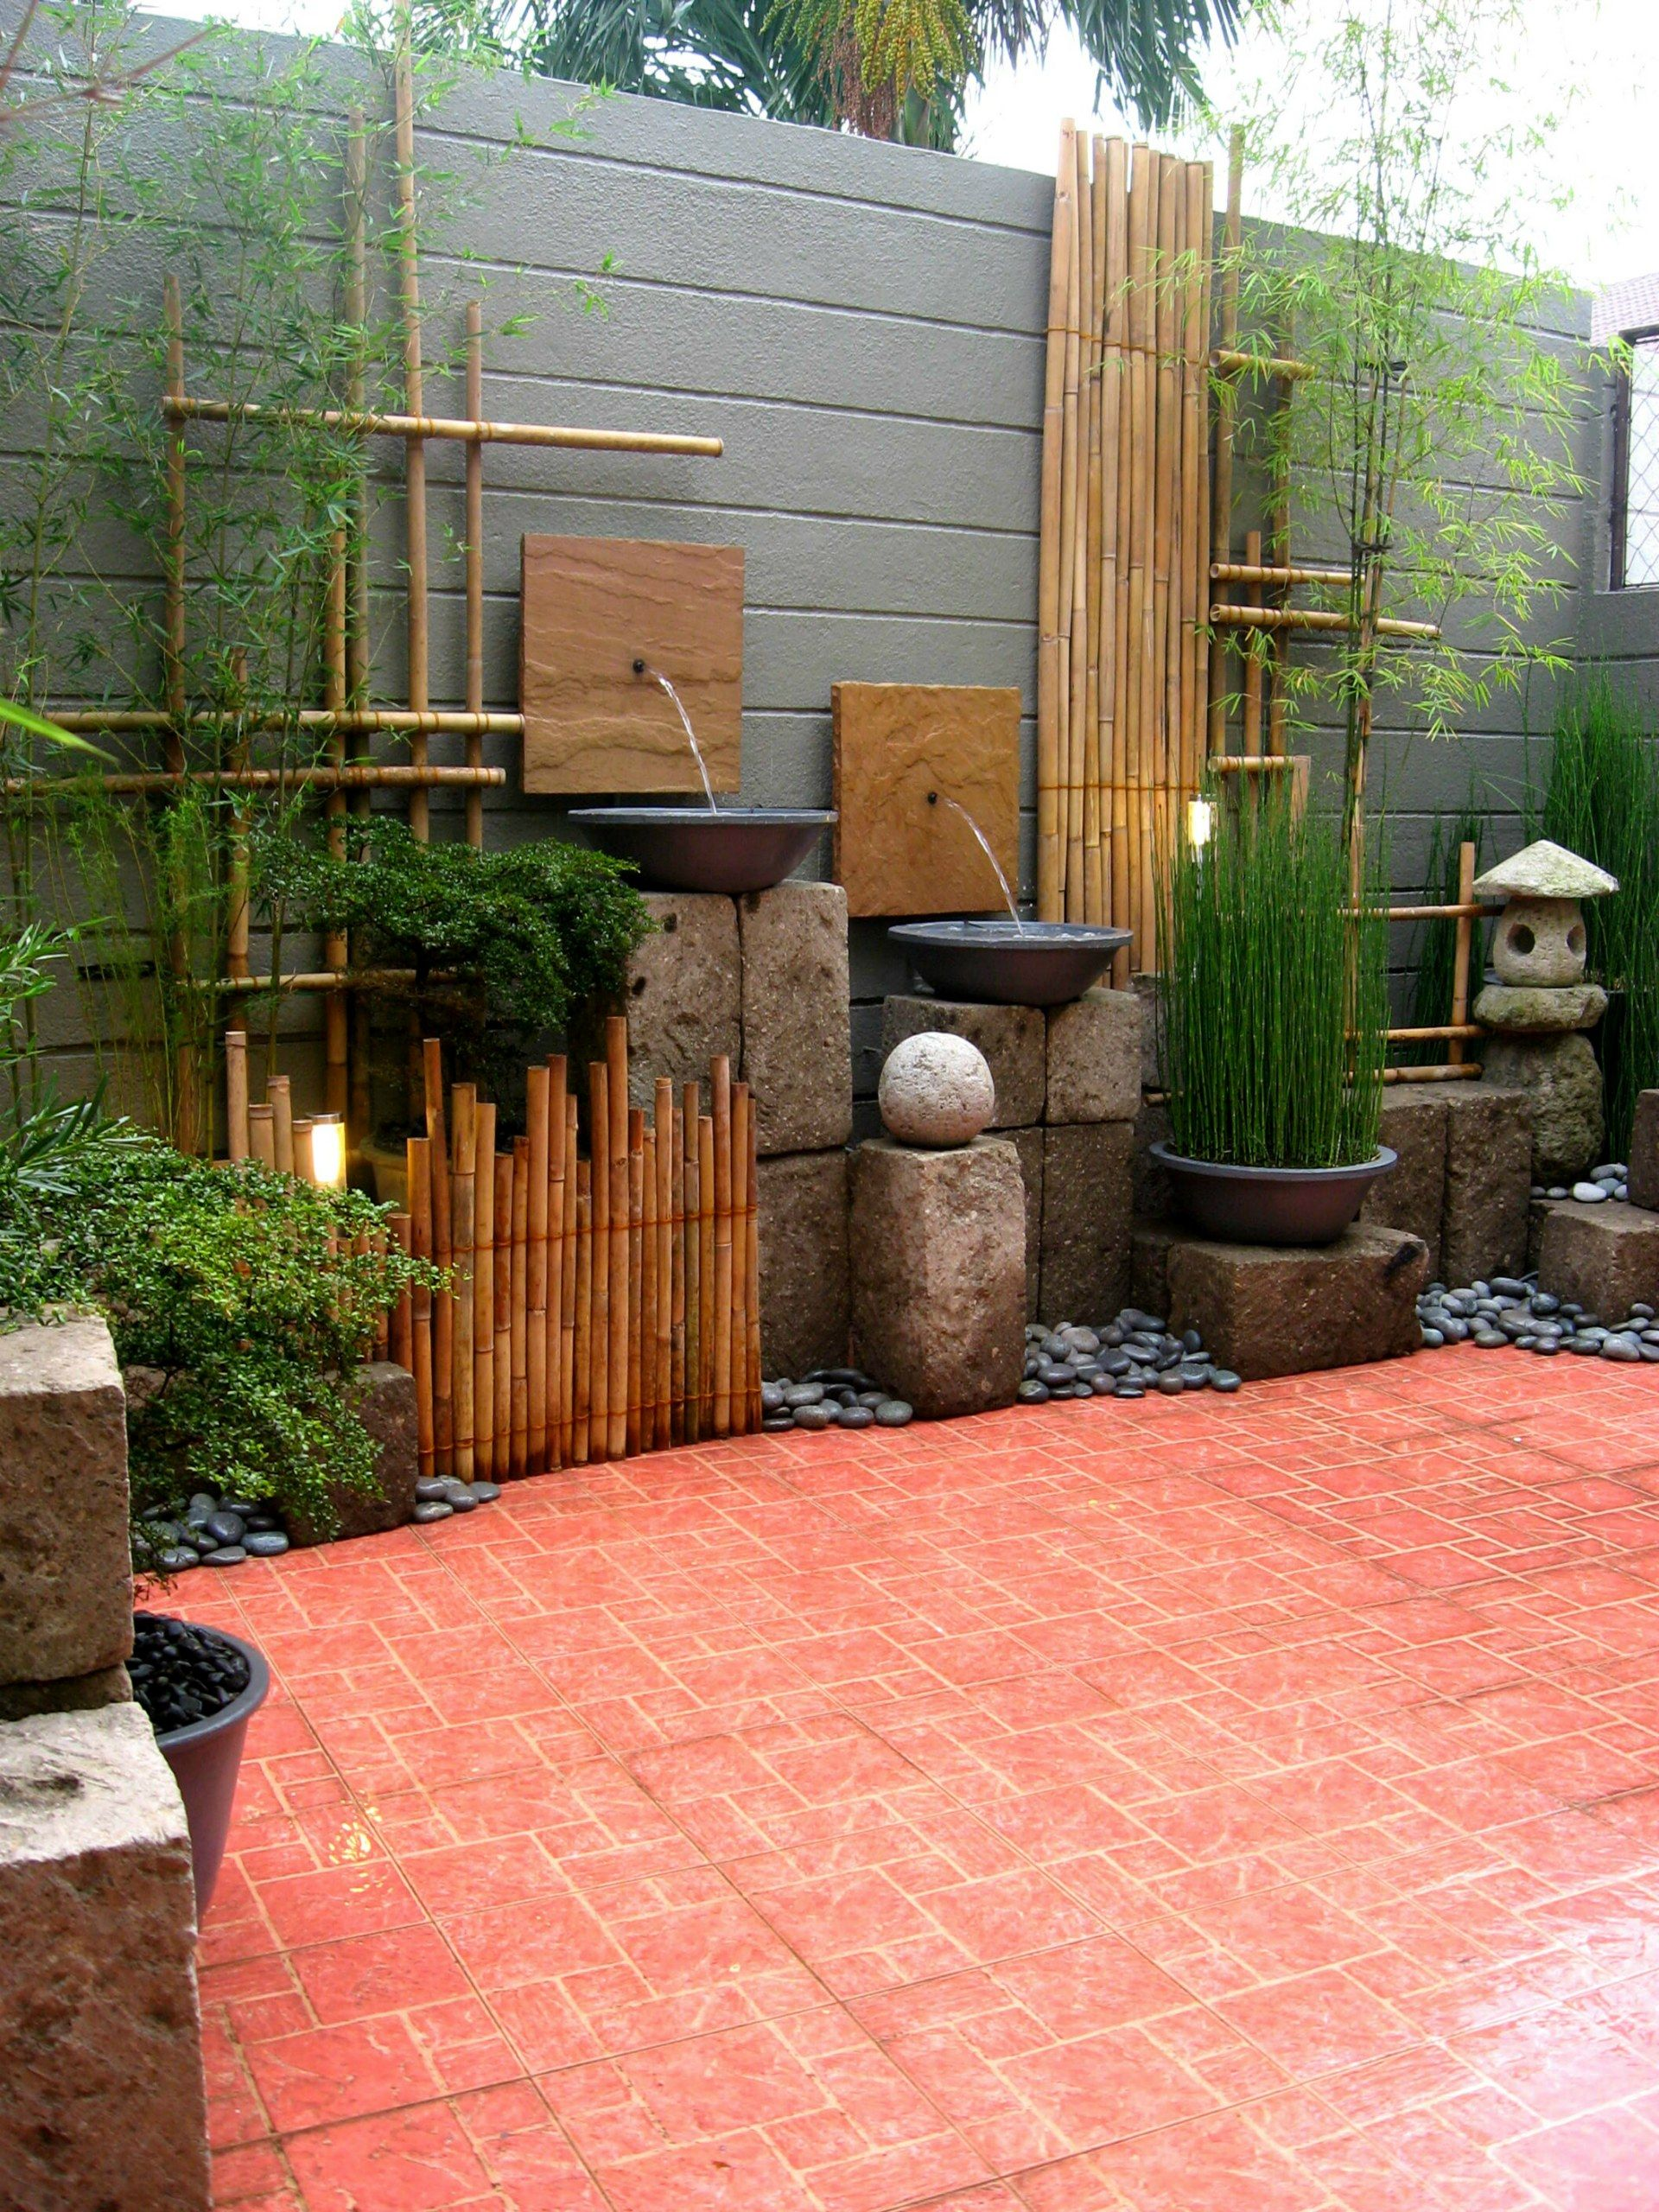 Landscape wall design ideas from primescape philippines for Garden design ideas in philippines